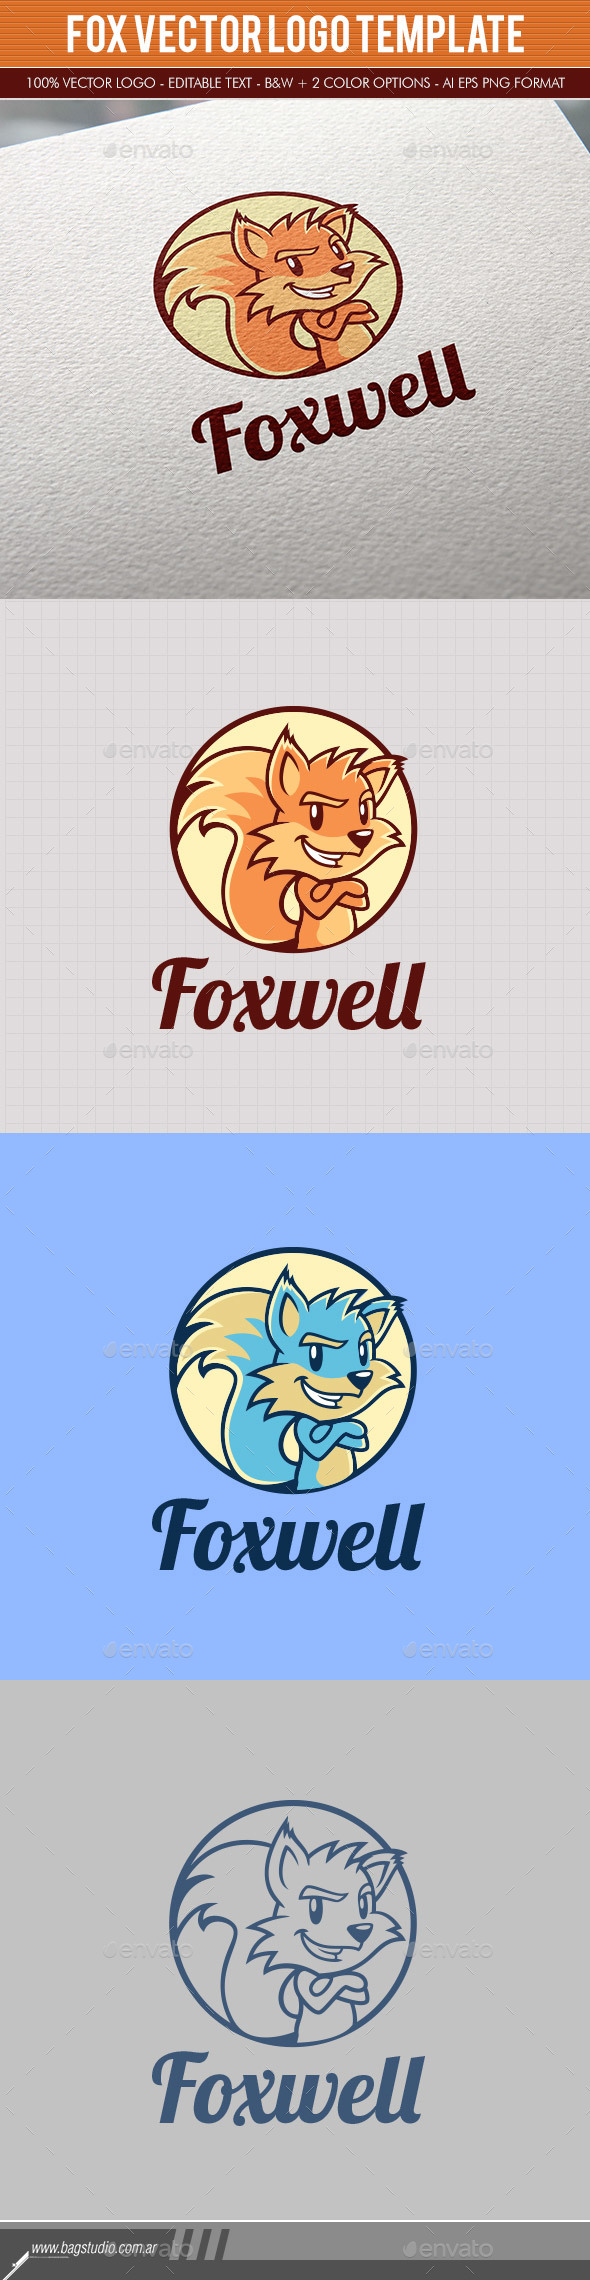 Fox Vector Logo Template - Animals Logo Templates